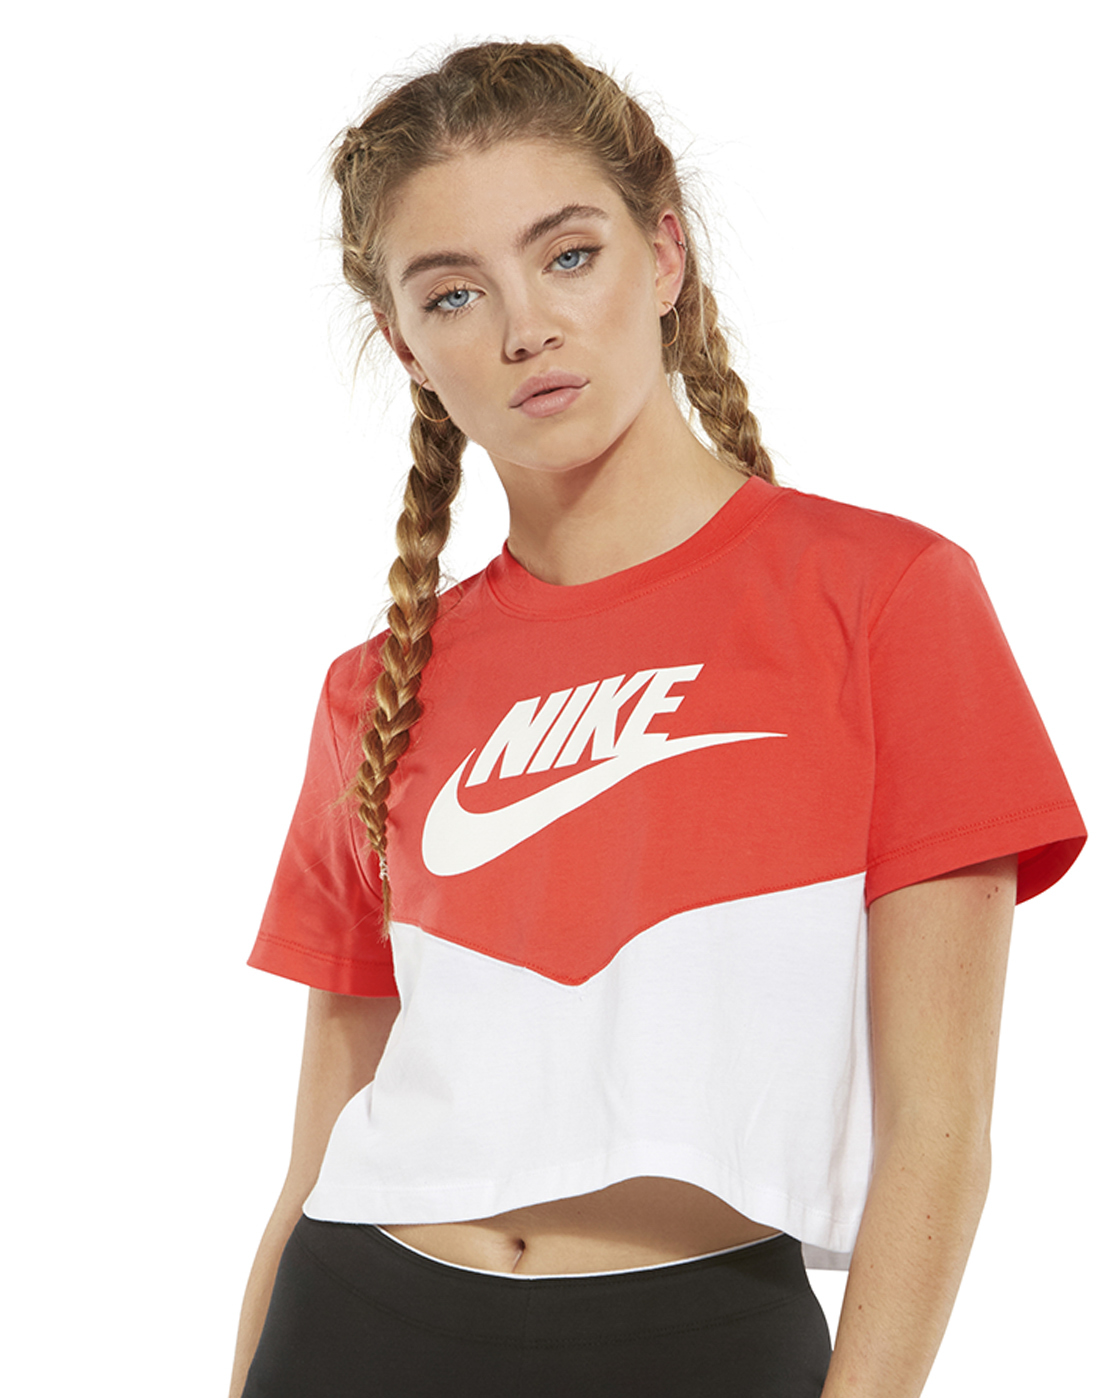 f49987c5 Women's Red & White Nike Cropped T-Shirt | Life Style Sports